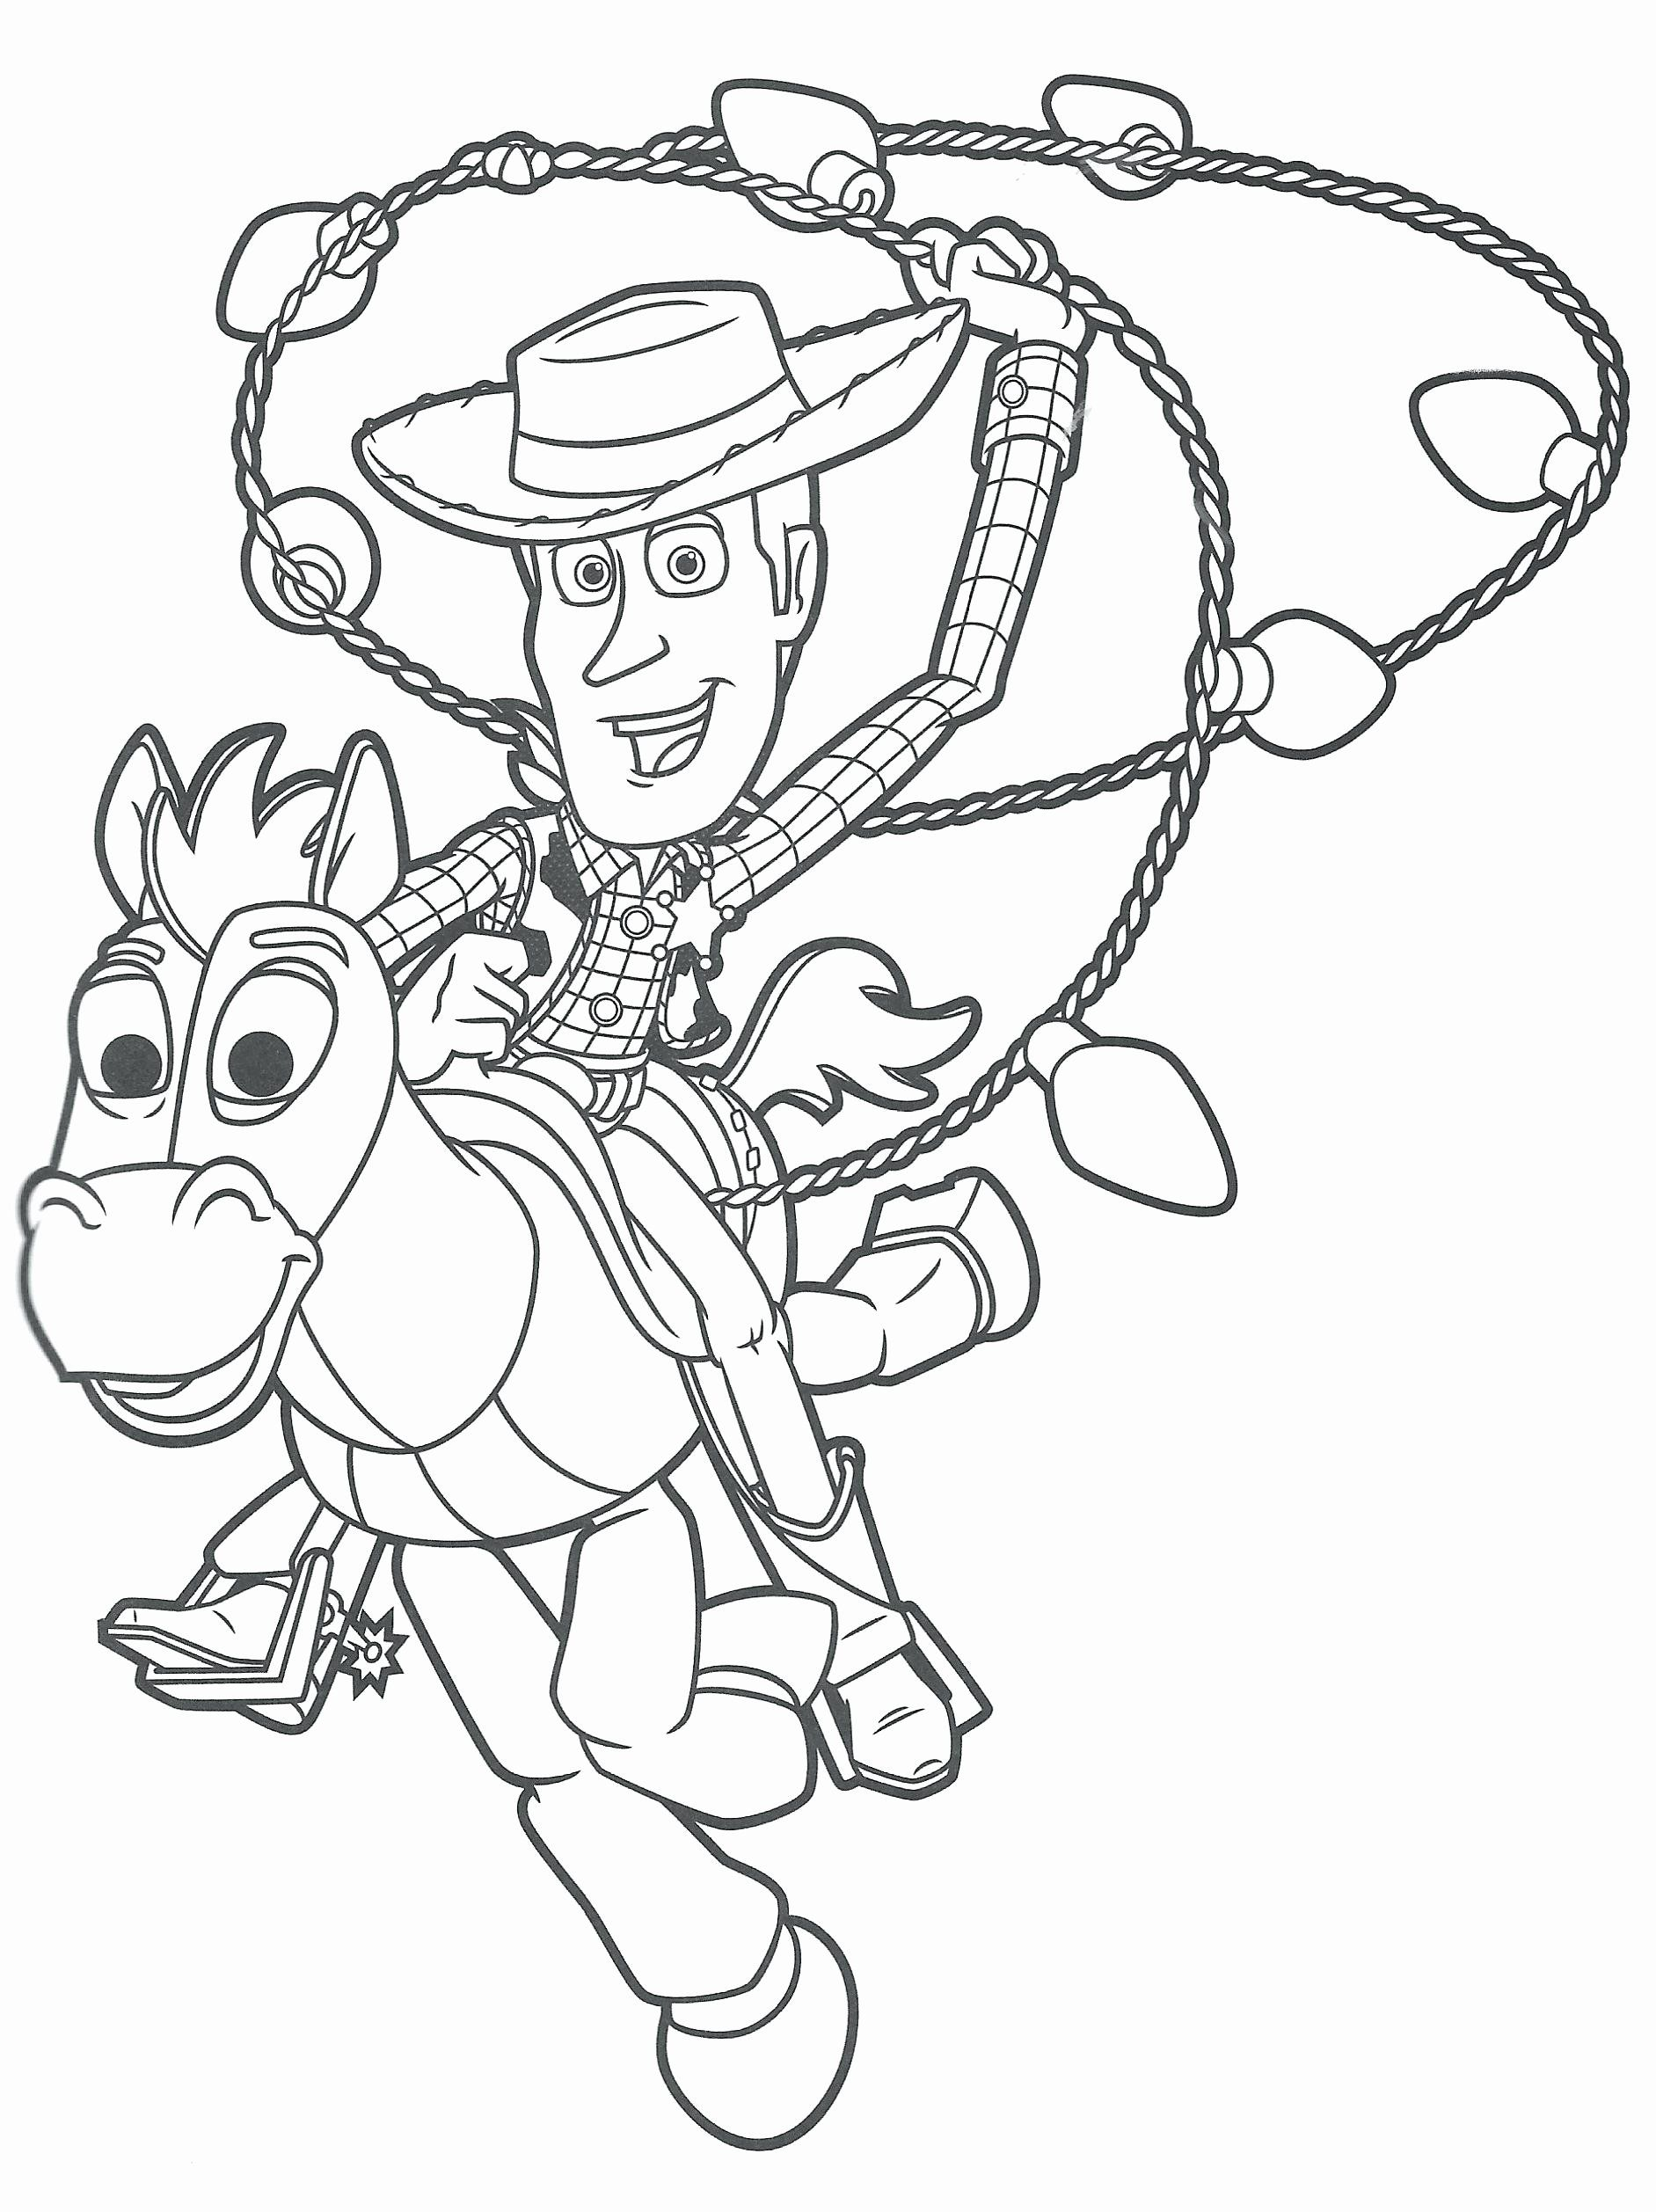 Free Printable Holiday Coloring Pages Luxury Coloring Pages Coloring Book Baby Mickey C Toy Story Coloring Pages Disney Coloring Pages Christmas Coloring Pages